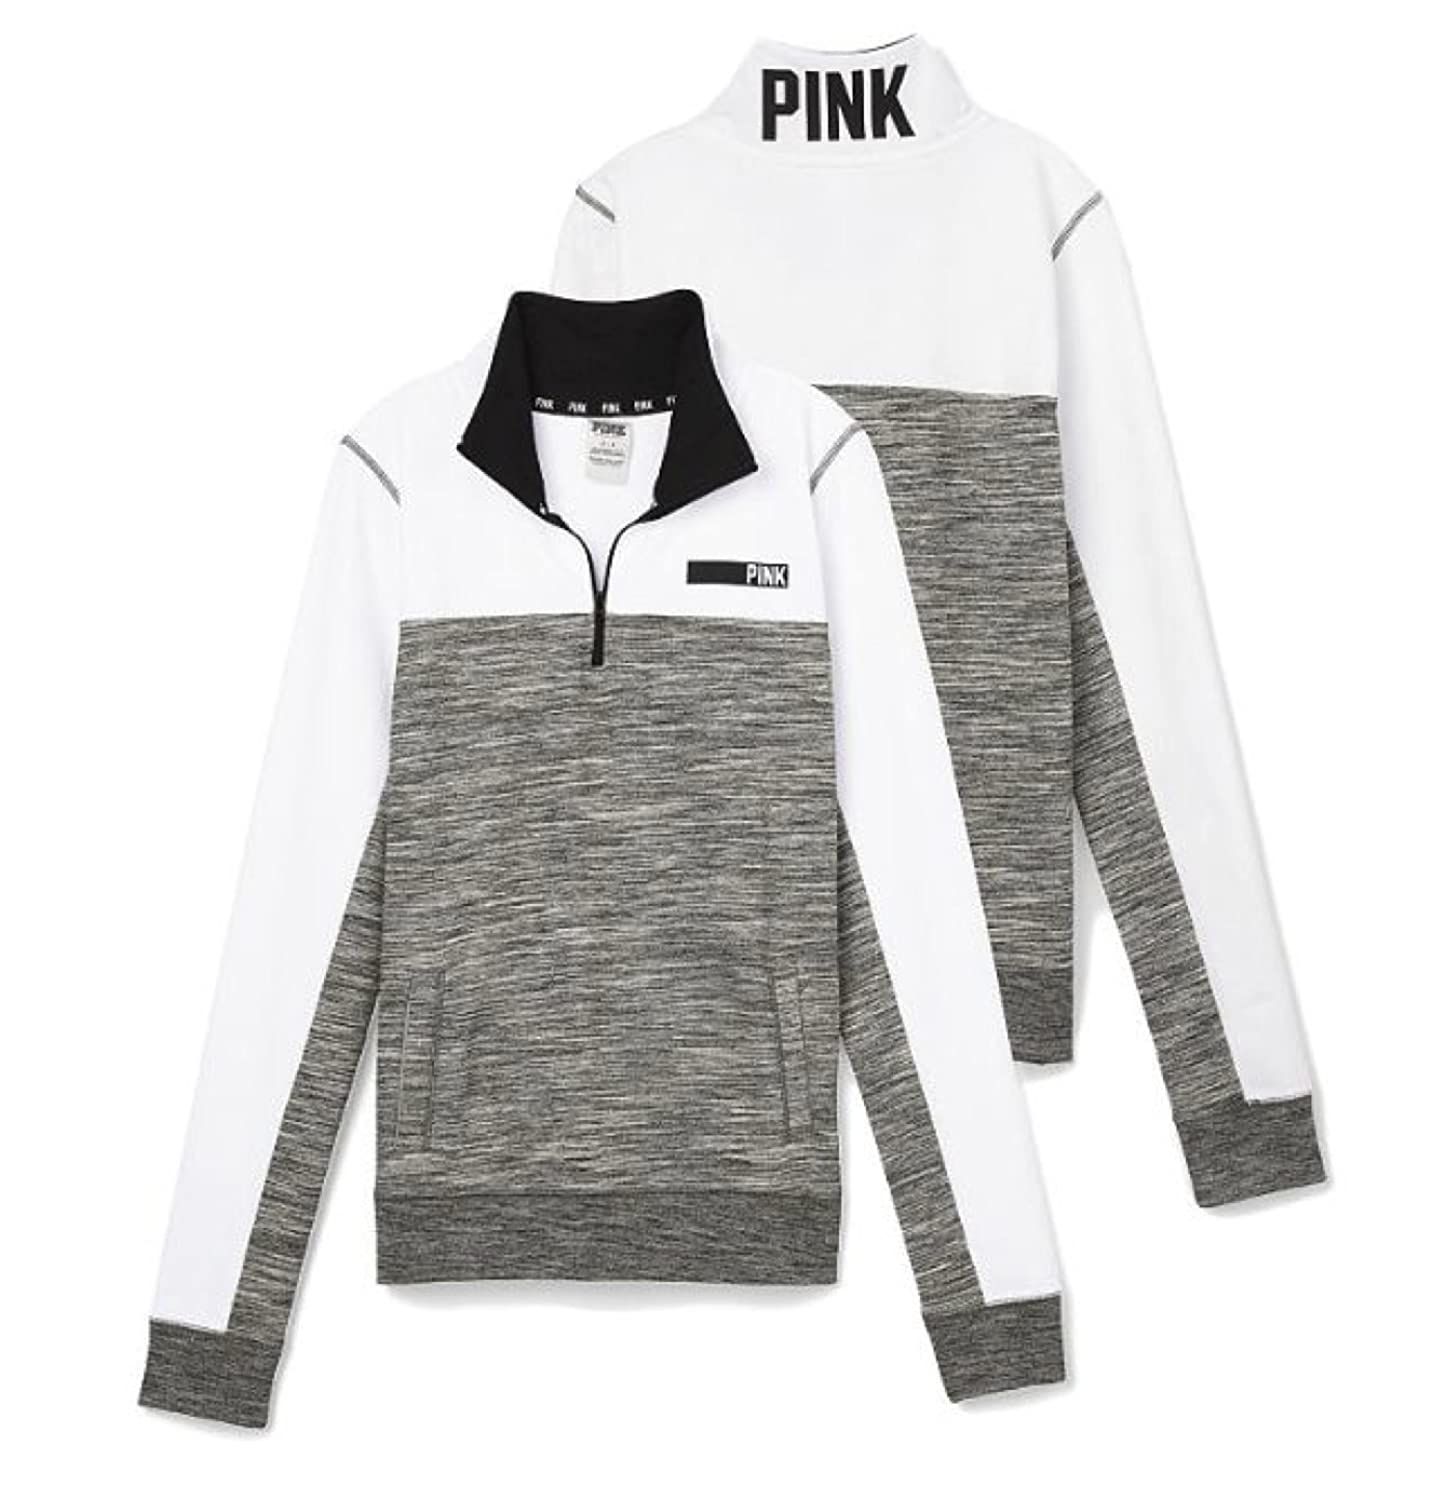 Victoria's Secret Pink Half Zip Jacket Sweatshirt Small Gray Marl ...